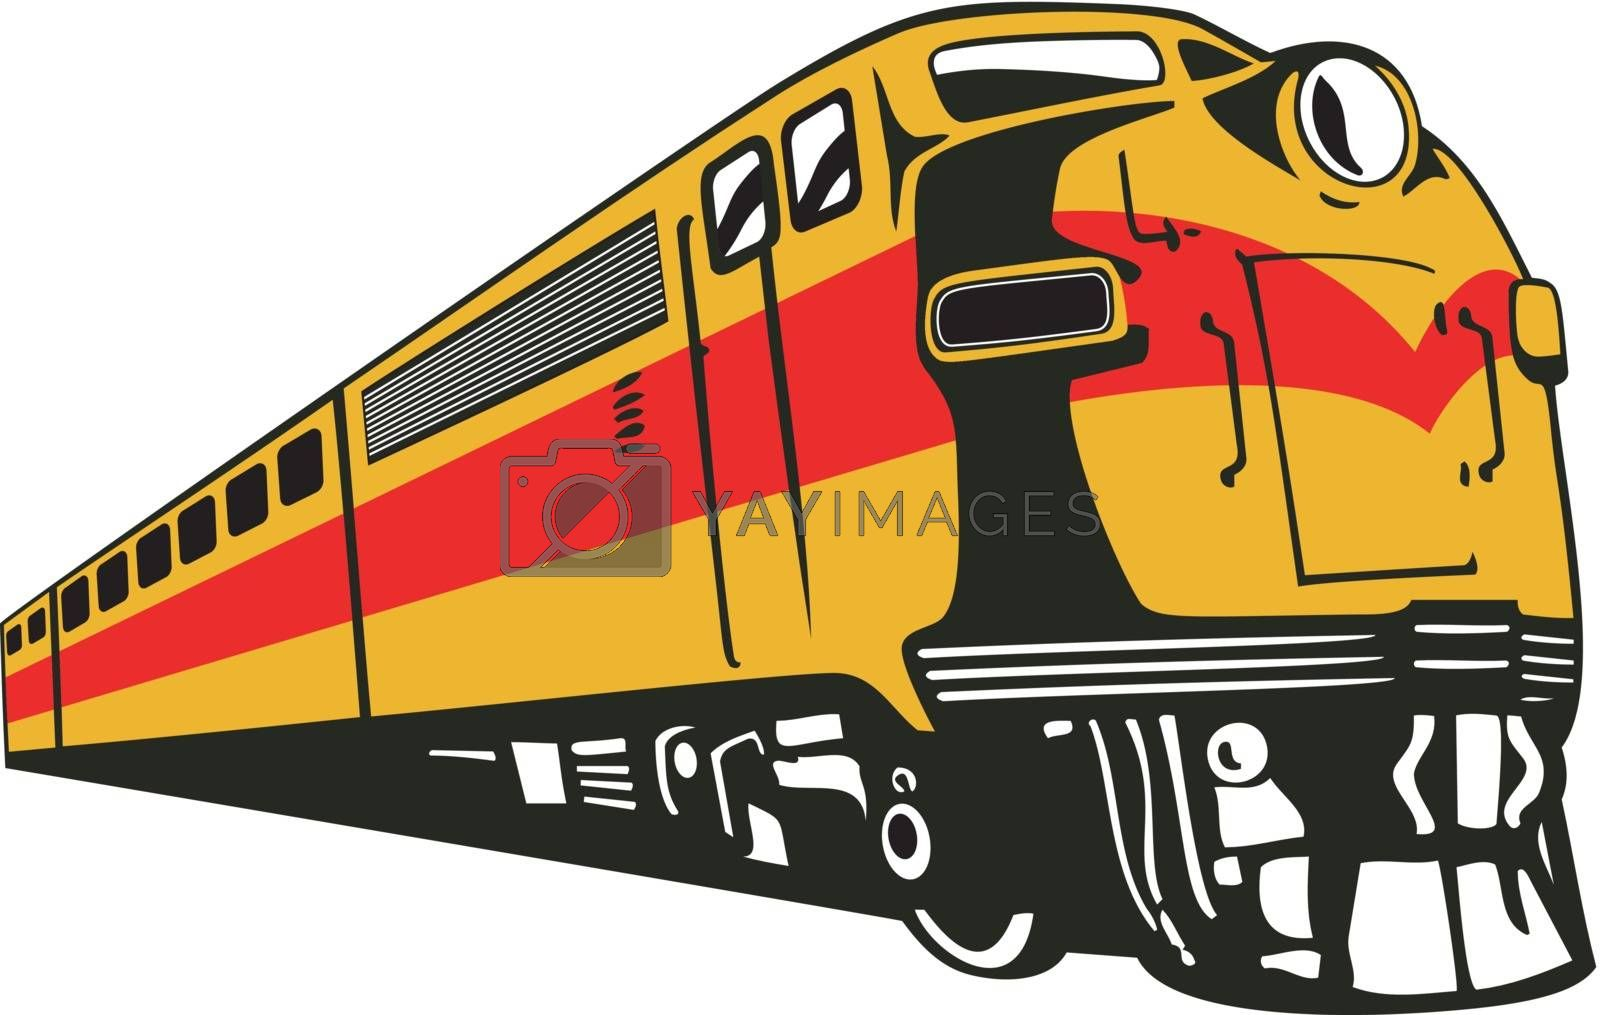 Illustration of a diesel train viewed from a low angle done in retro style on isolated white background.